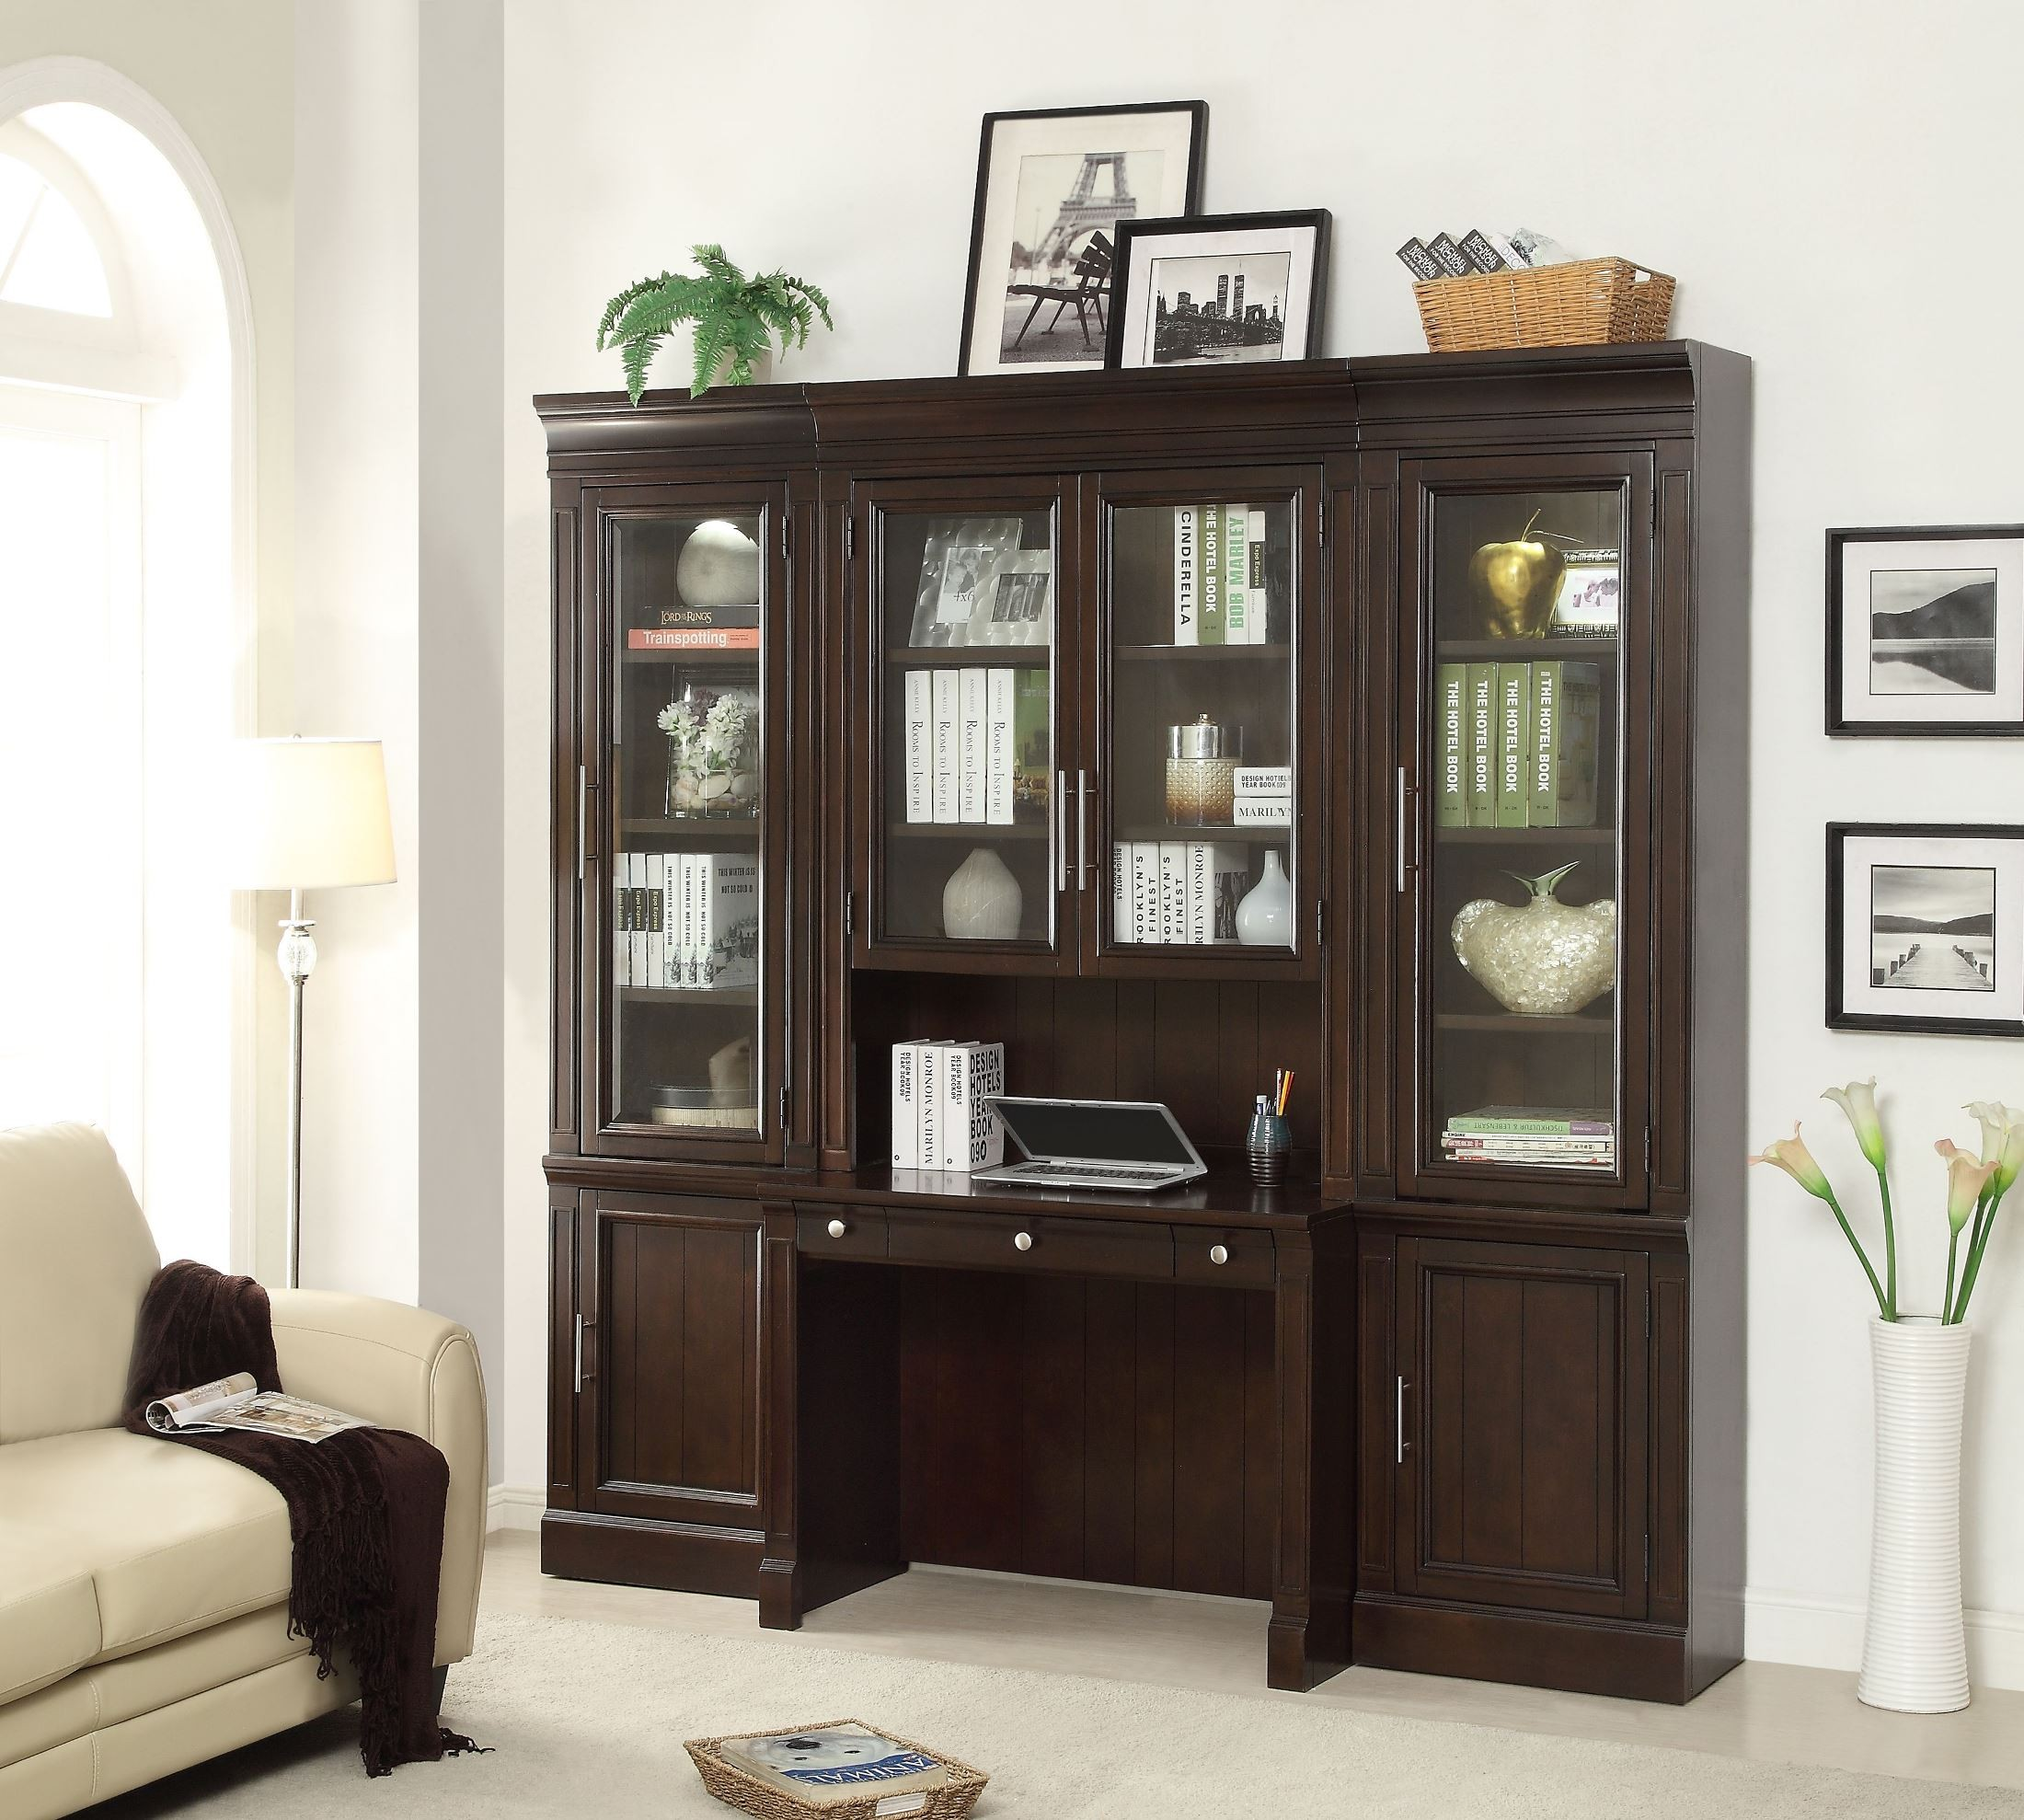 Small Wall Desk: Stanford Small Wall Desk Unit From Parker House (STA-463-2